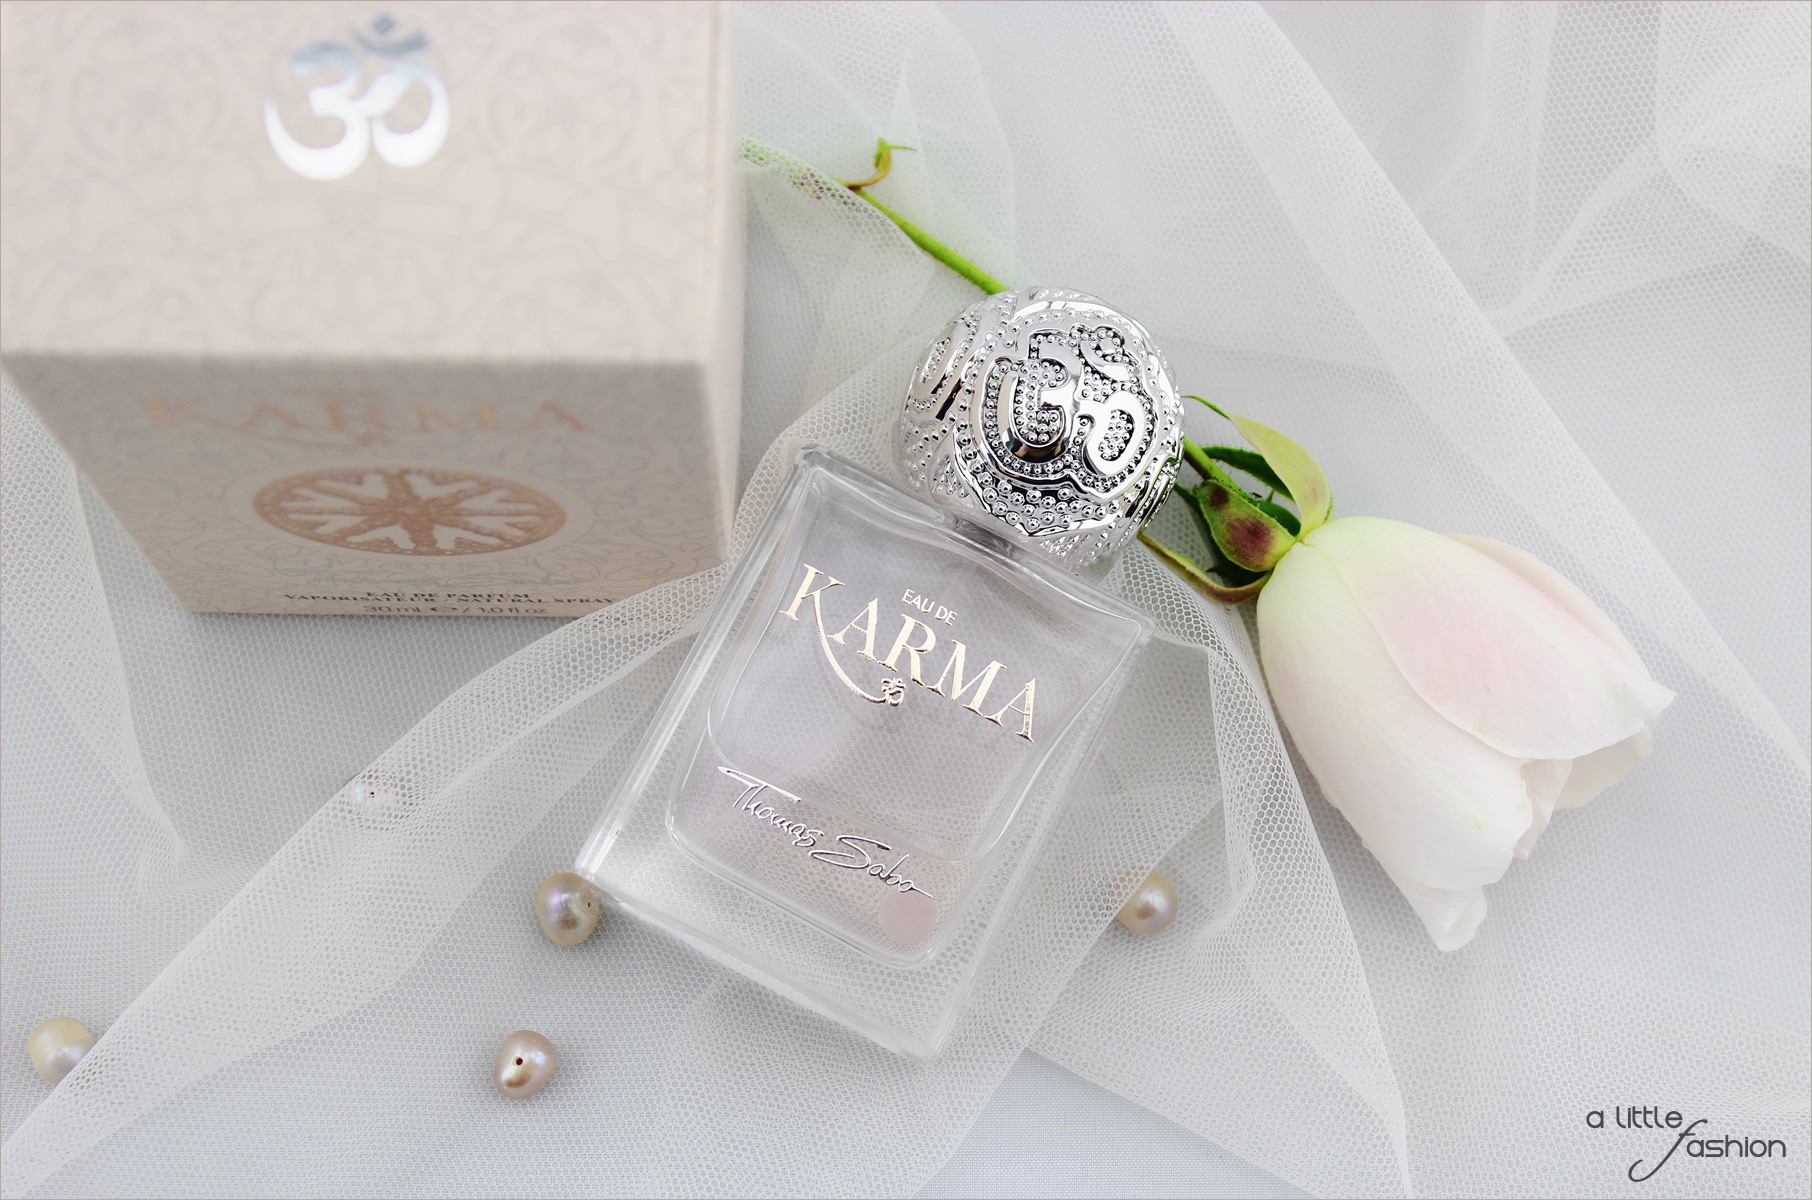 Eau de Karma - Neuer Duft von Thomas Sabo | A Little Fashion | https://www.filizity.com/beauty/eau-de-karma-neuer-duft-von-thomas-sabo